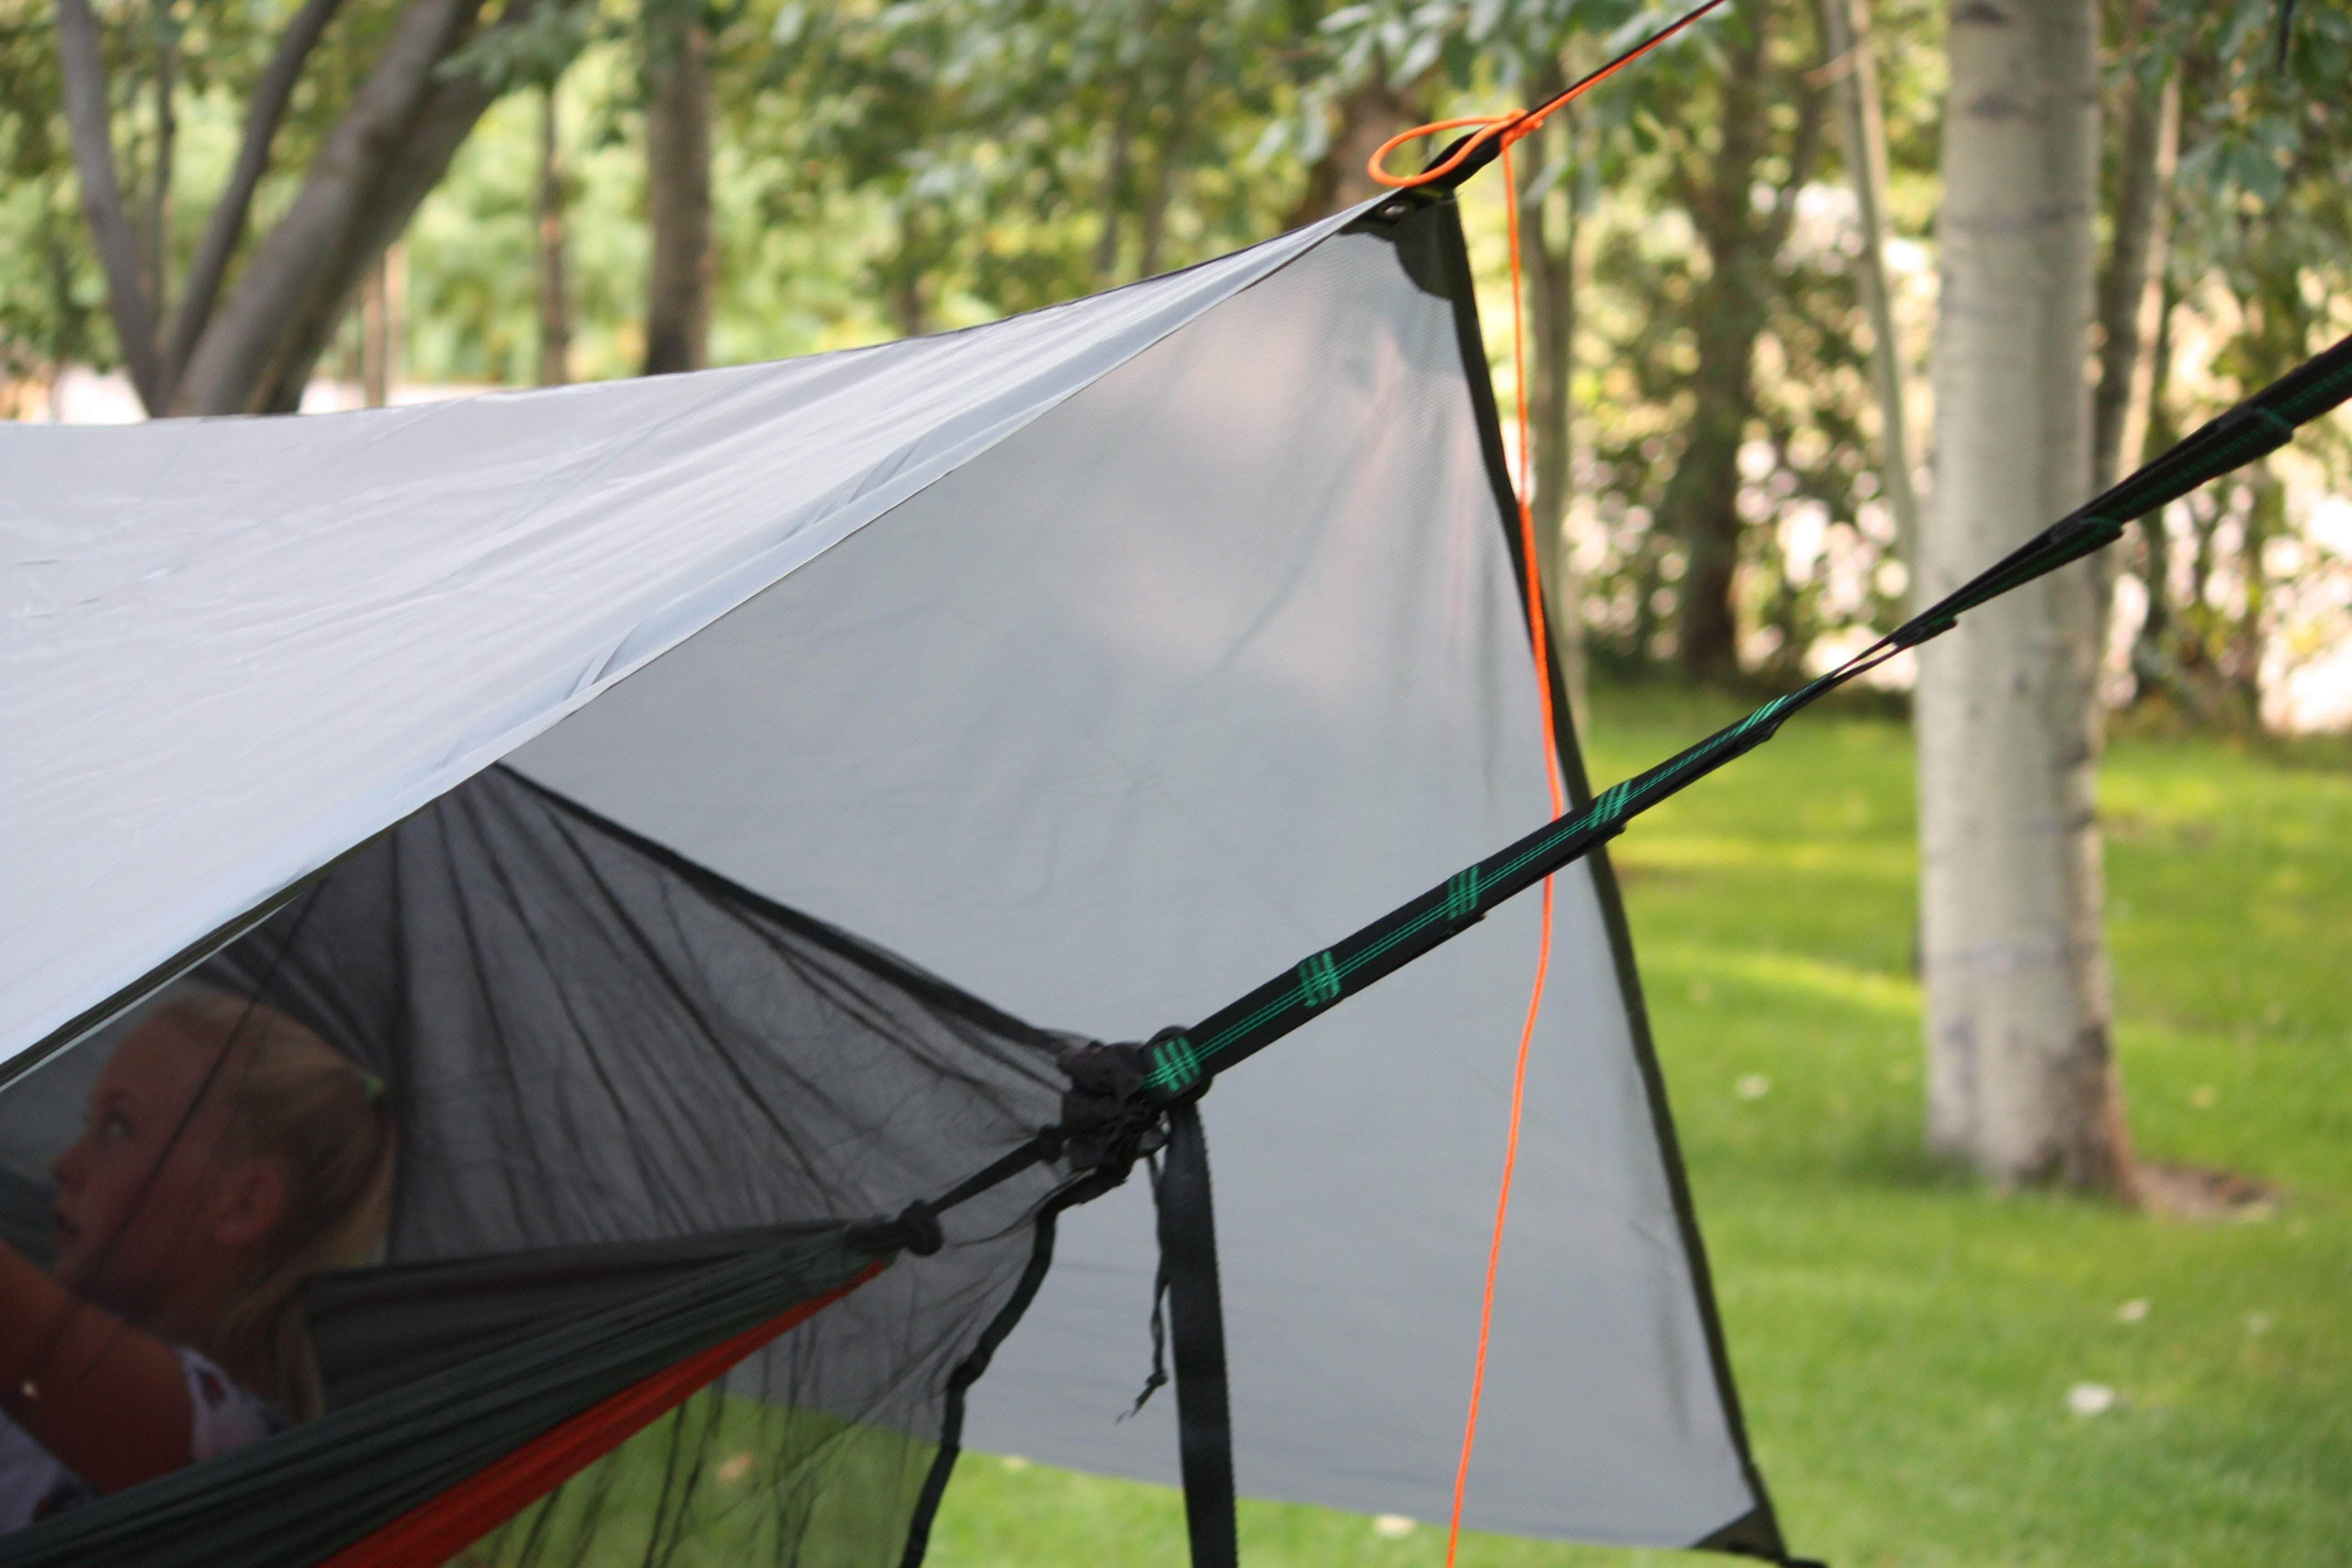 madera outdoor funnel builder products  59 tarp    bo madera outdoor hammock  panies that plant     hammock tarp  u0026    bo  stay  fy and protected from rain and      rh   maderaoutdoor